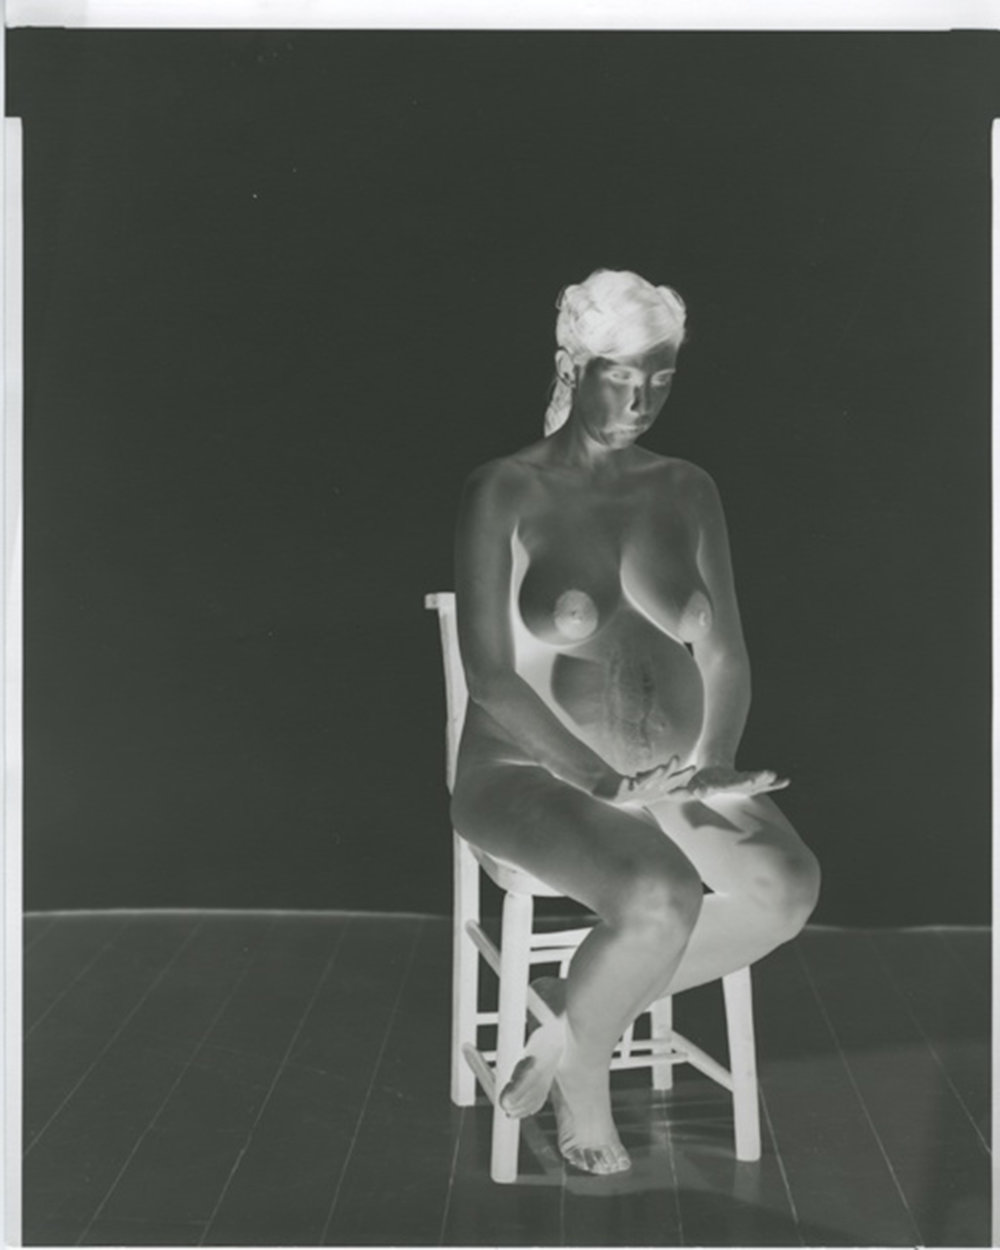 Dora Forbert, Untitled, ca 1942, From the Archive of Adela K., 8 x 10 inches, C-41 print, edition of 8, 2011